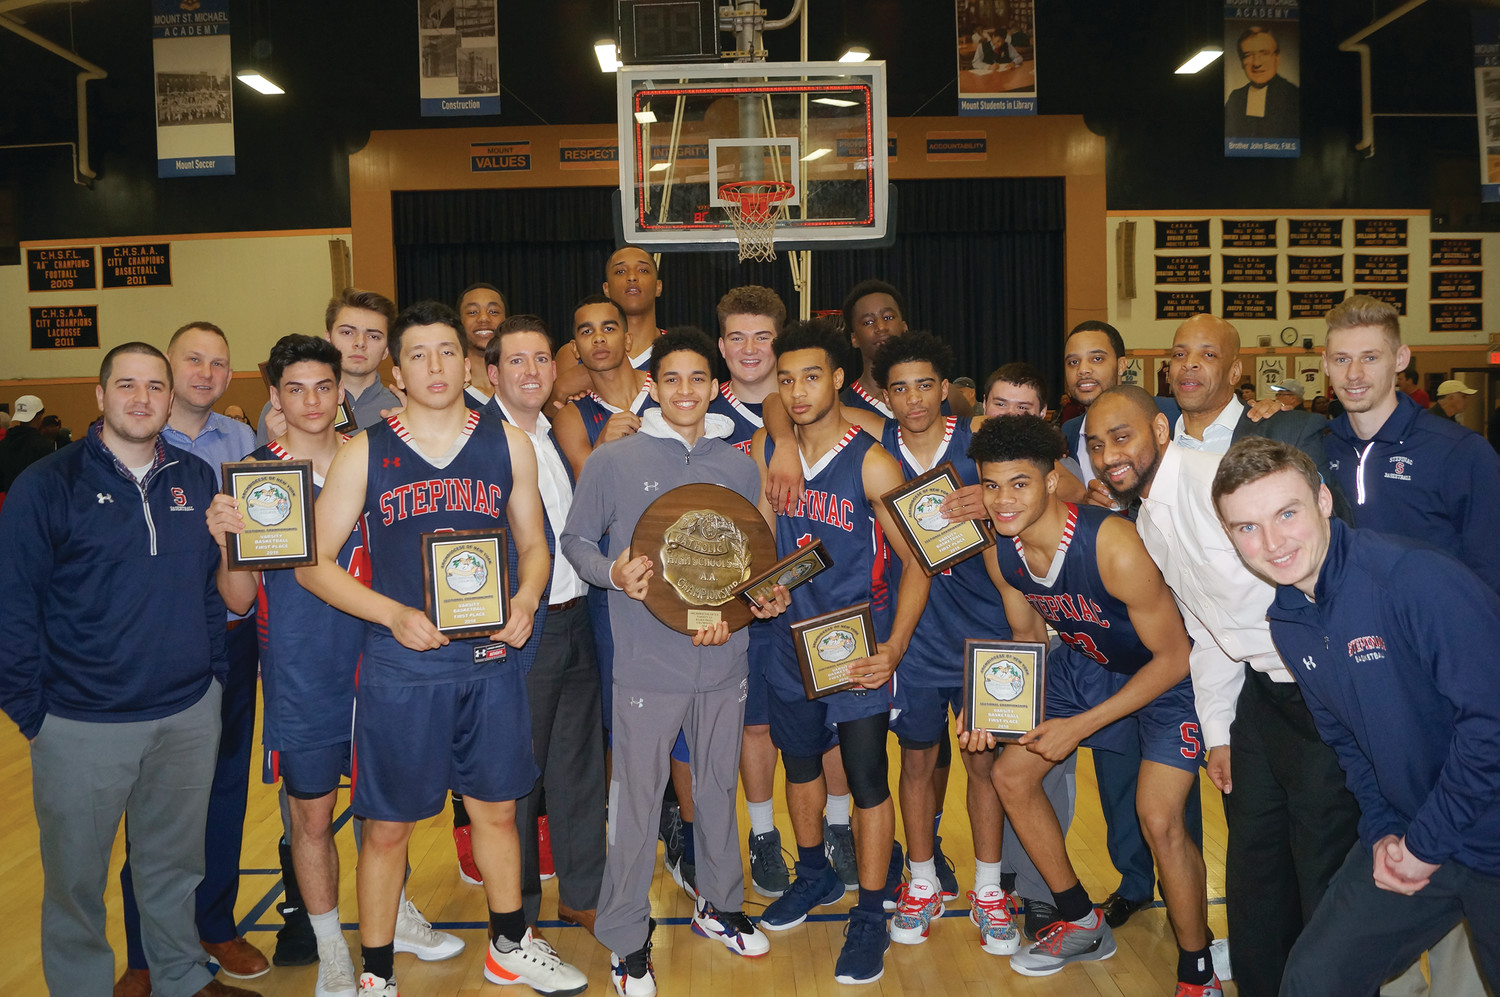 The Archbishop Stepinac High School boys' basketball team won the program's first archdiocesan title since 1984 with a 78-62 victory over Cardinal Hayes at Mount St. Michael High School in the Bronx Feb. 24.